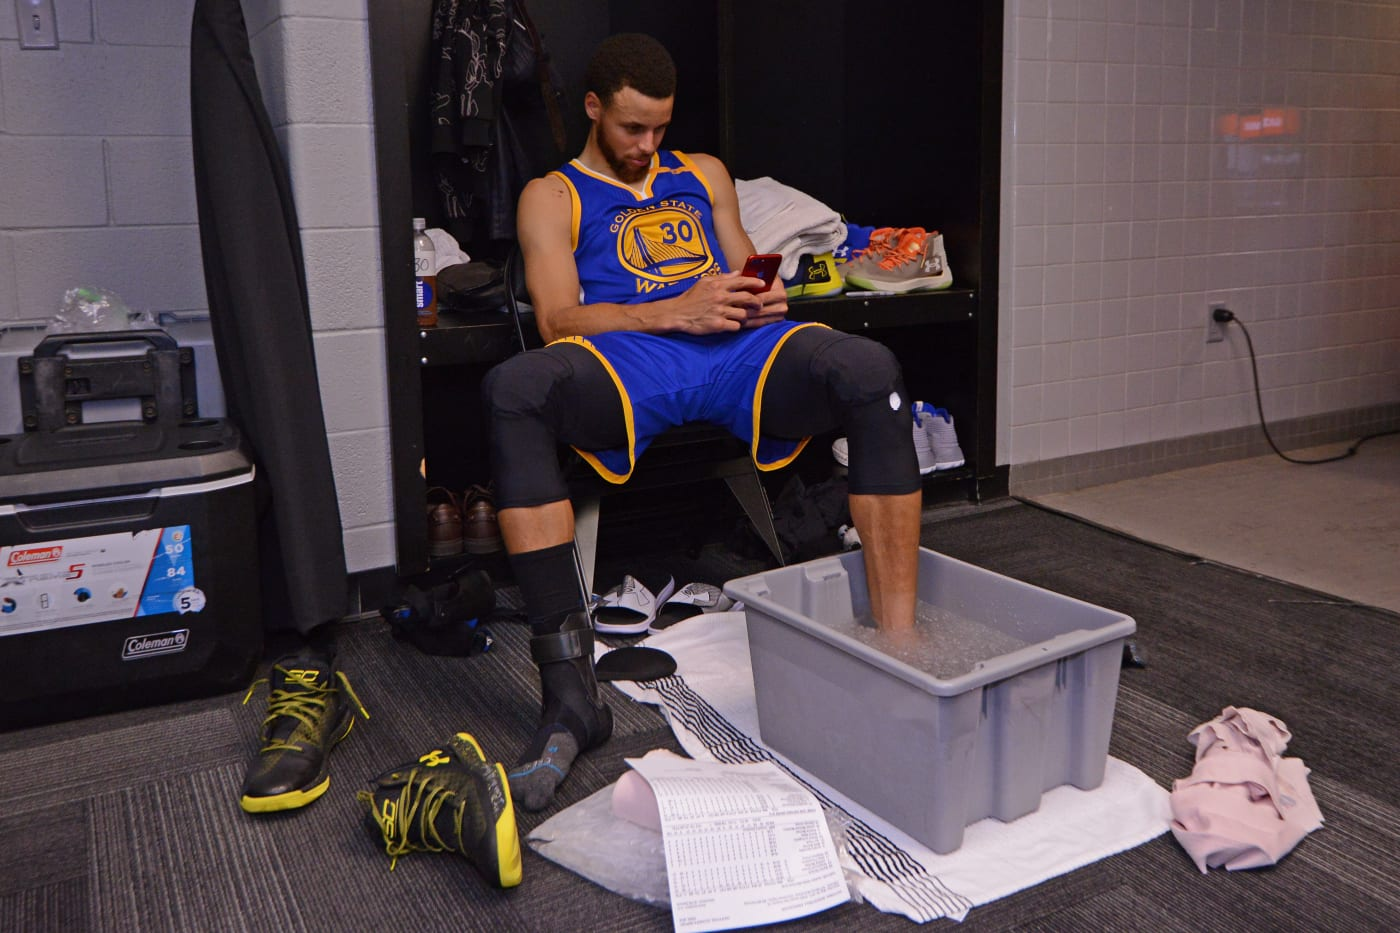 Steph Curry Ice Bin Cell Phone Warriors Spurs Getty 2017